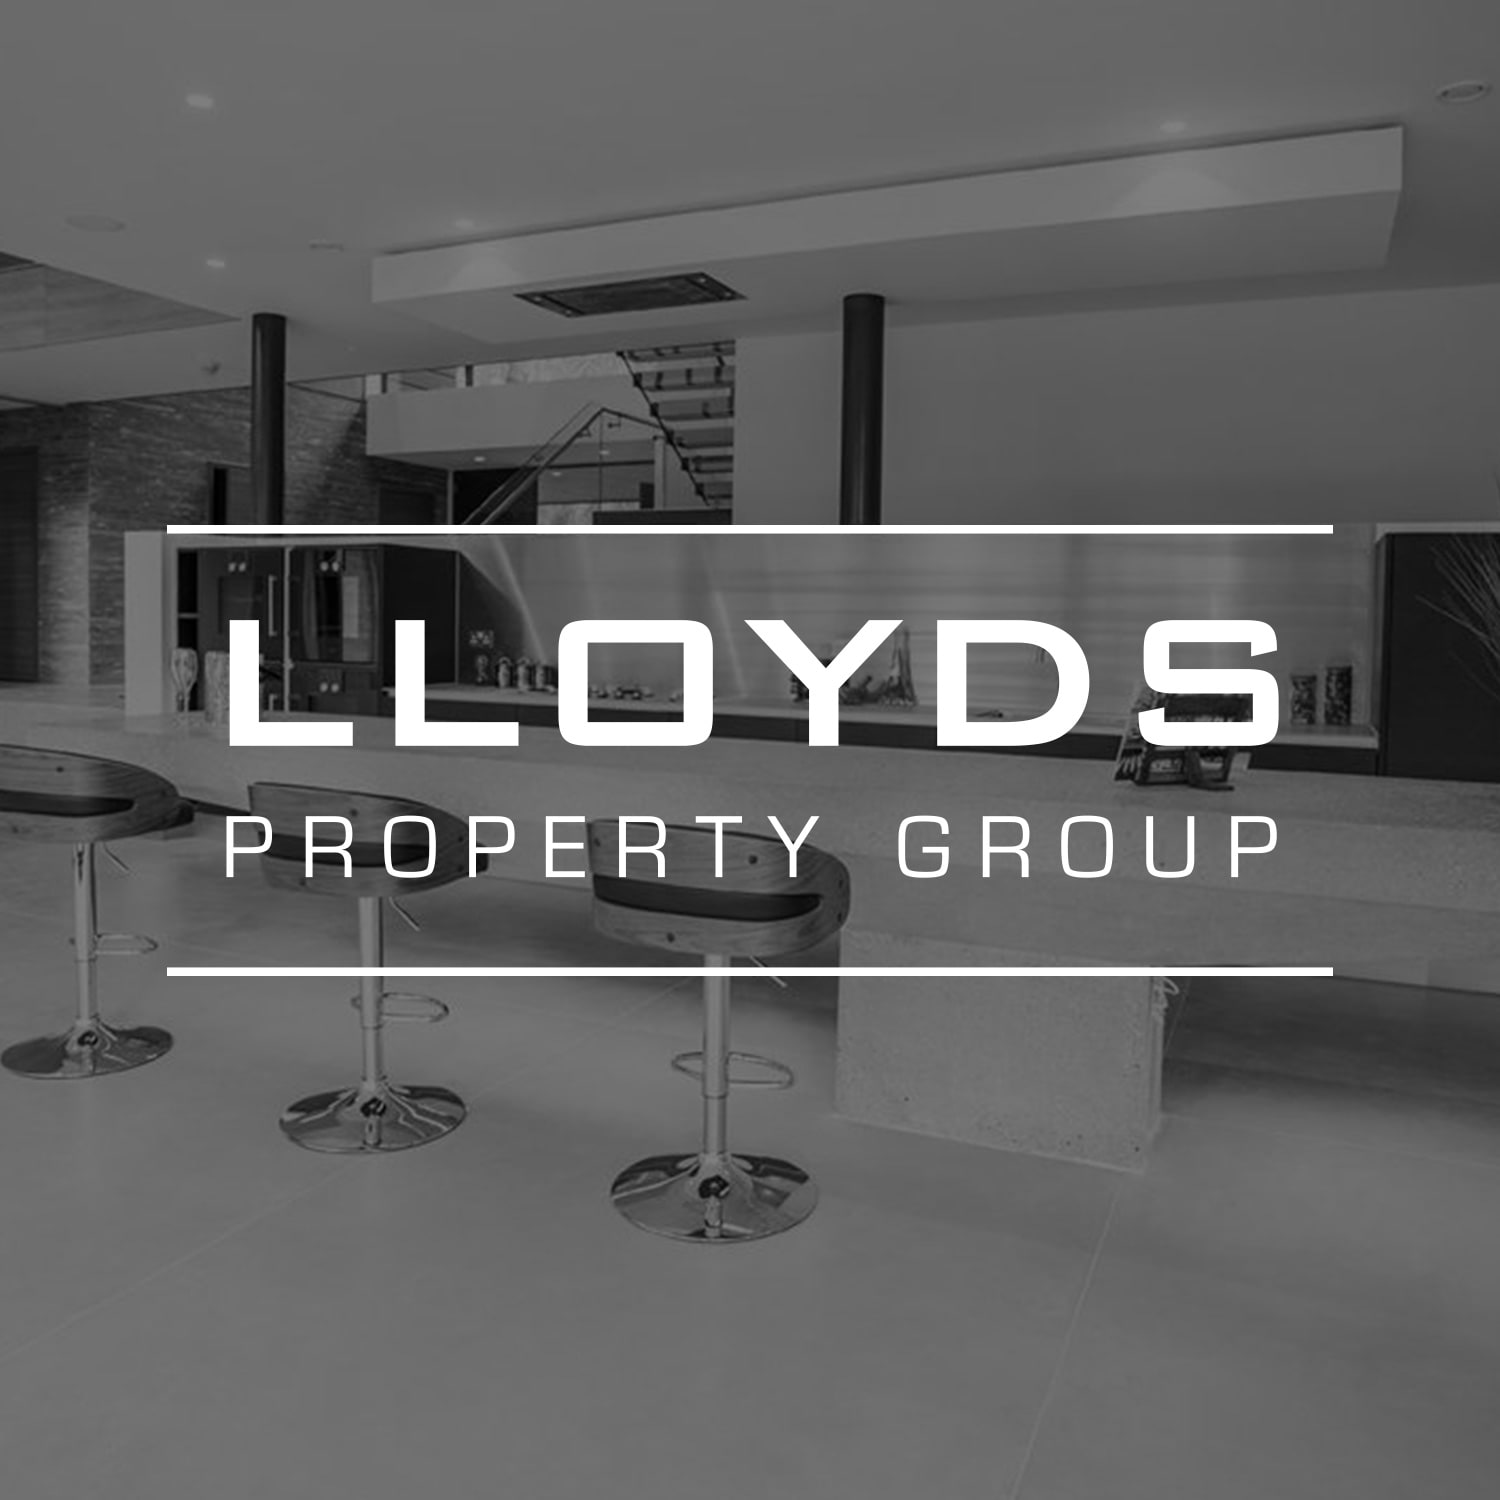 Lloyds Property Group Logo